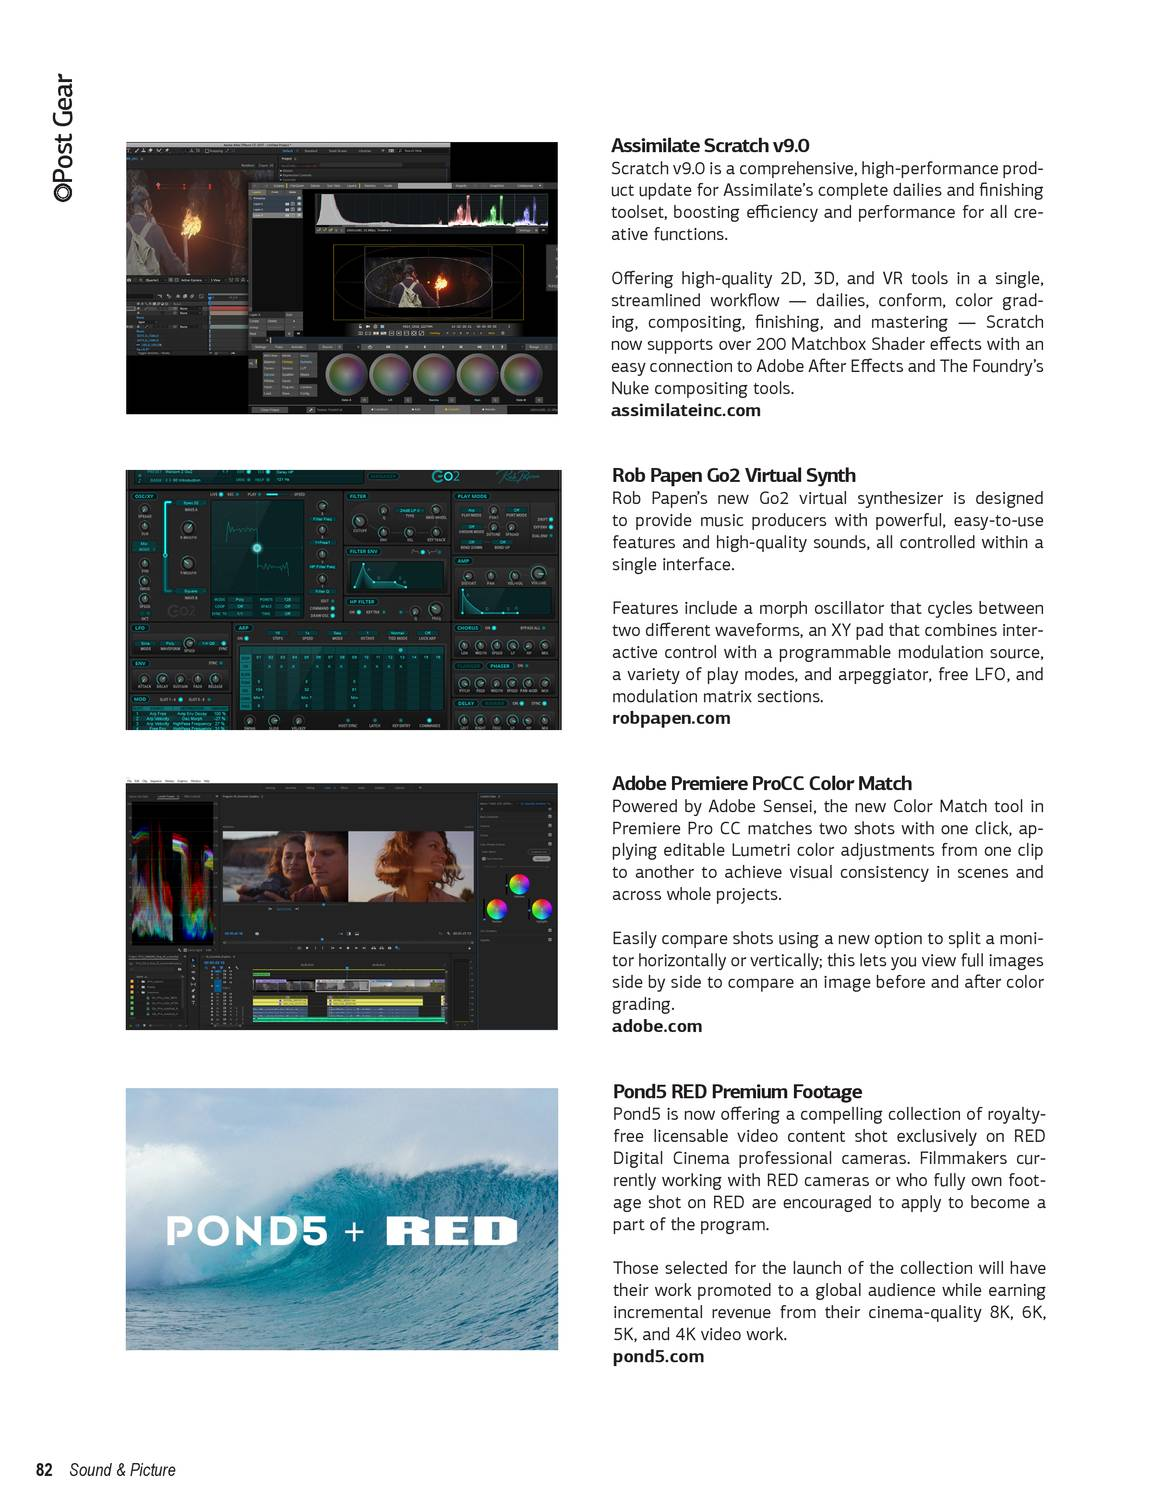 Sound & Picture - Issue 2, 2018 - page 82